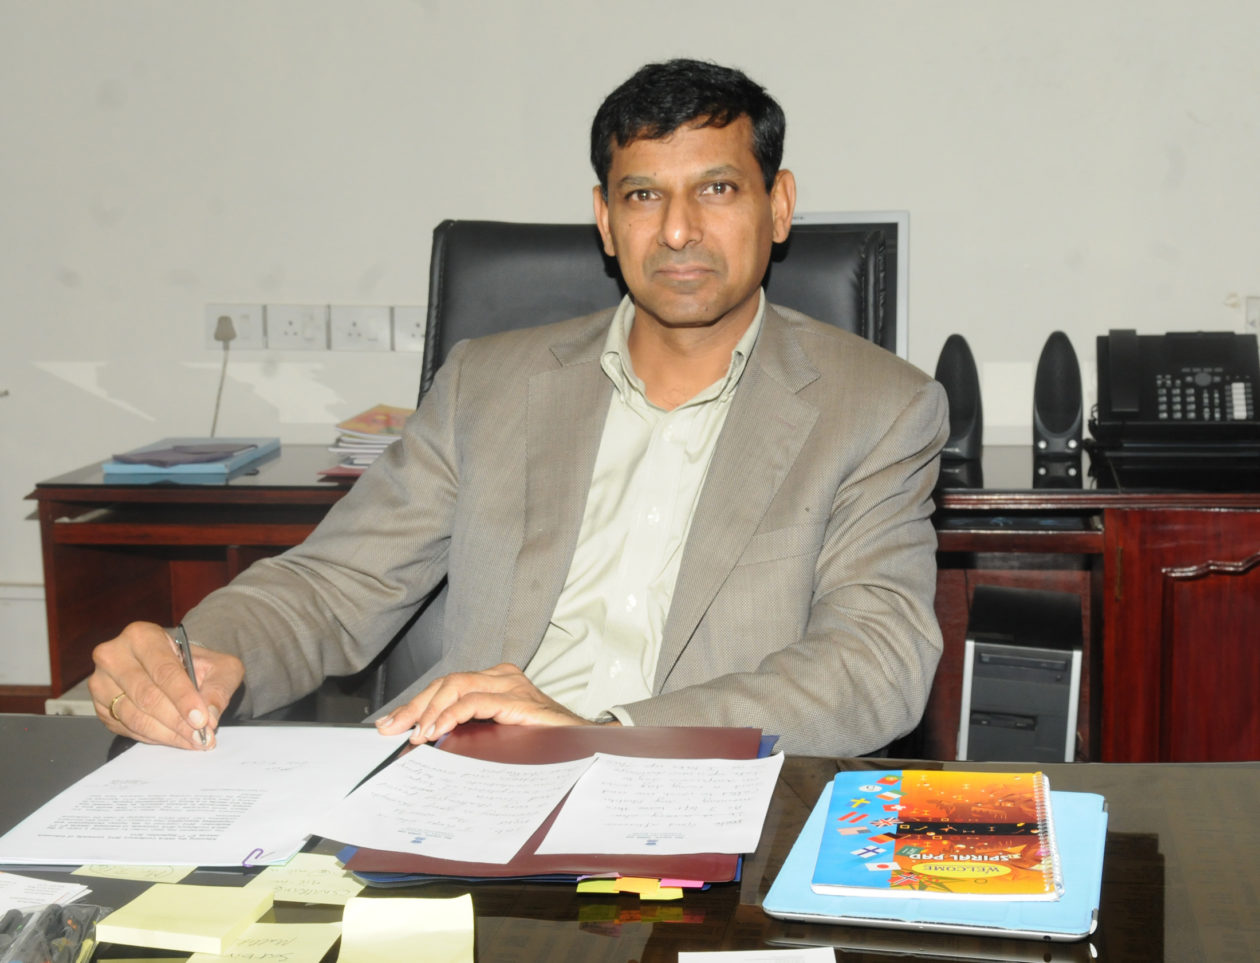 Ex-Reserve Bank of India governor Raghuram Rajan says cryptocurrencies have a potential future